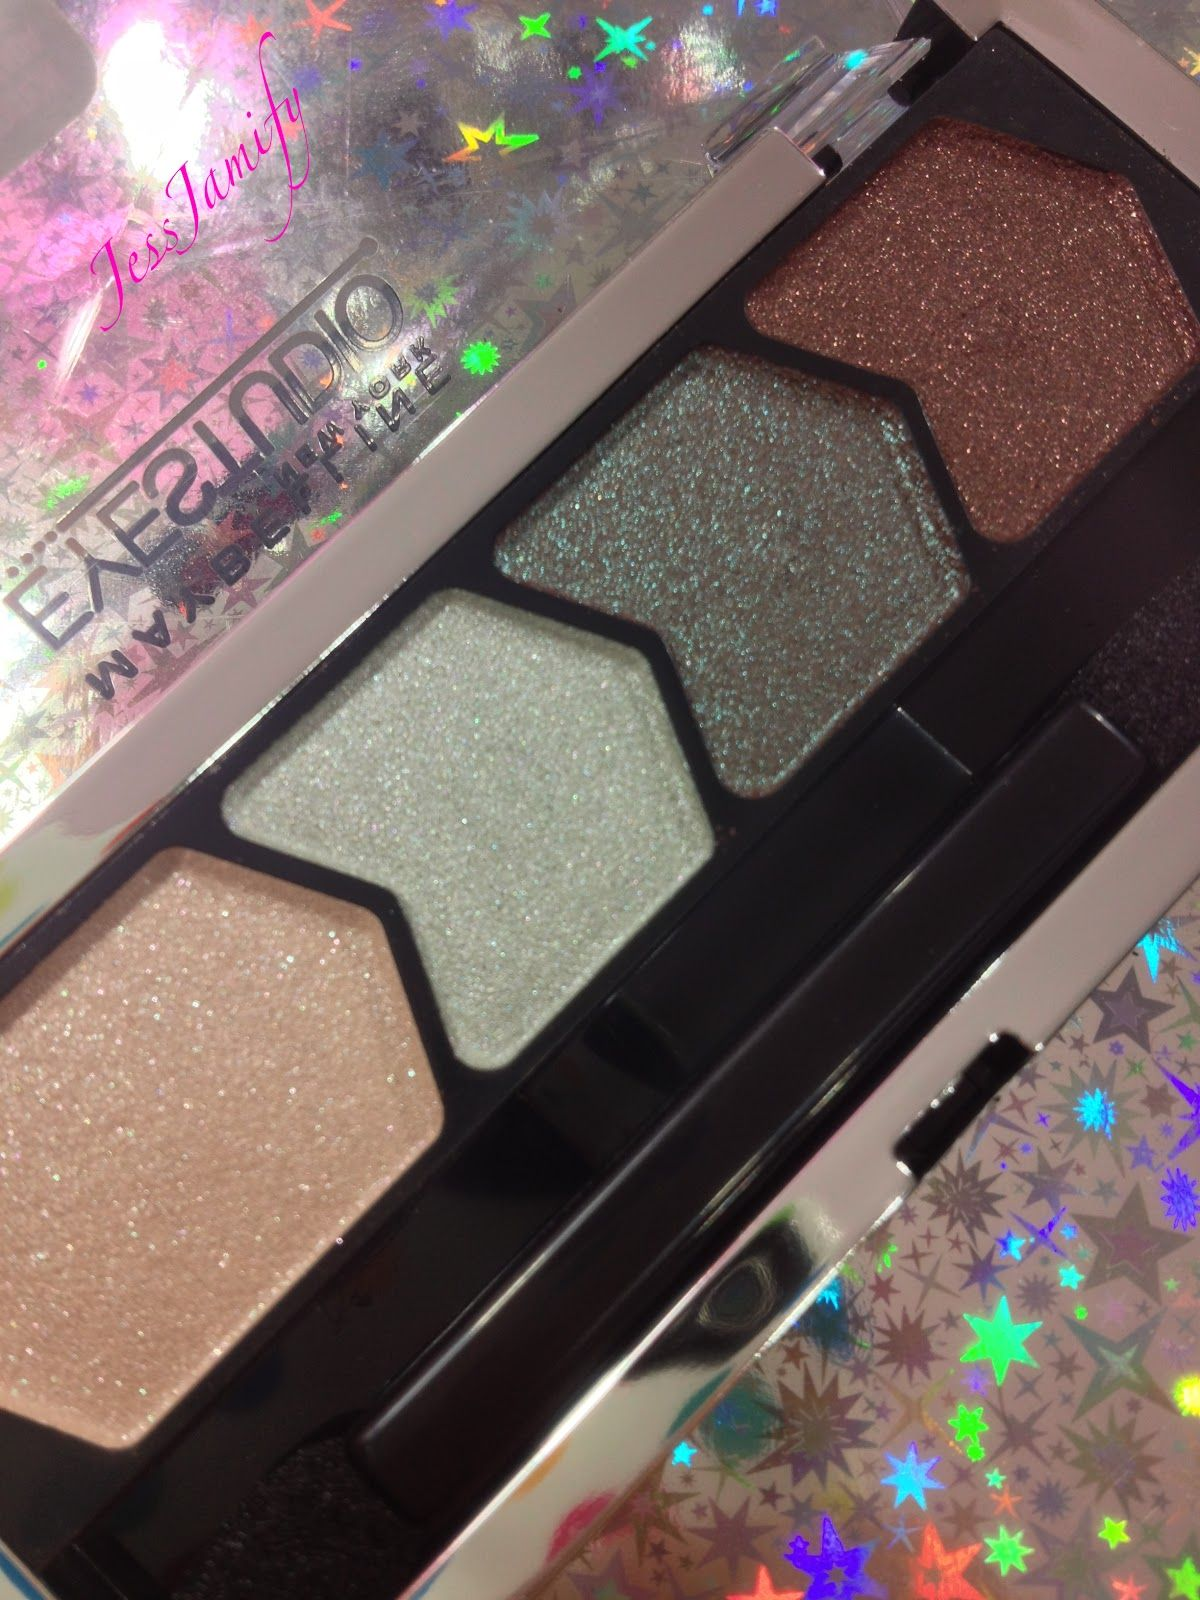 maybelline eyeshadow quad in olive martini great dupe for